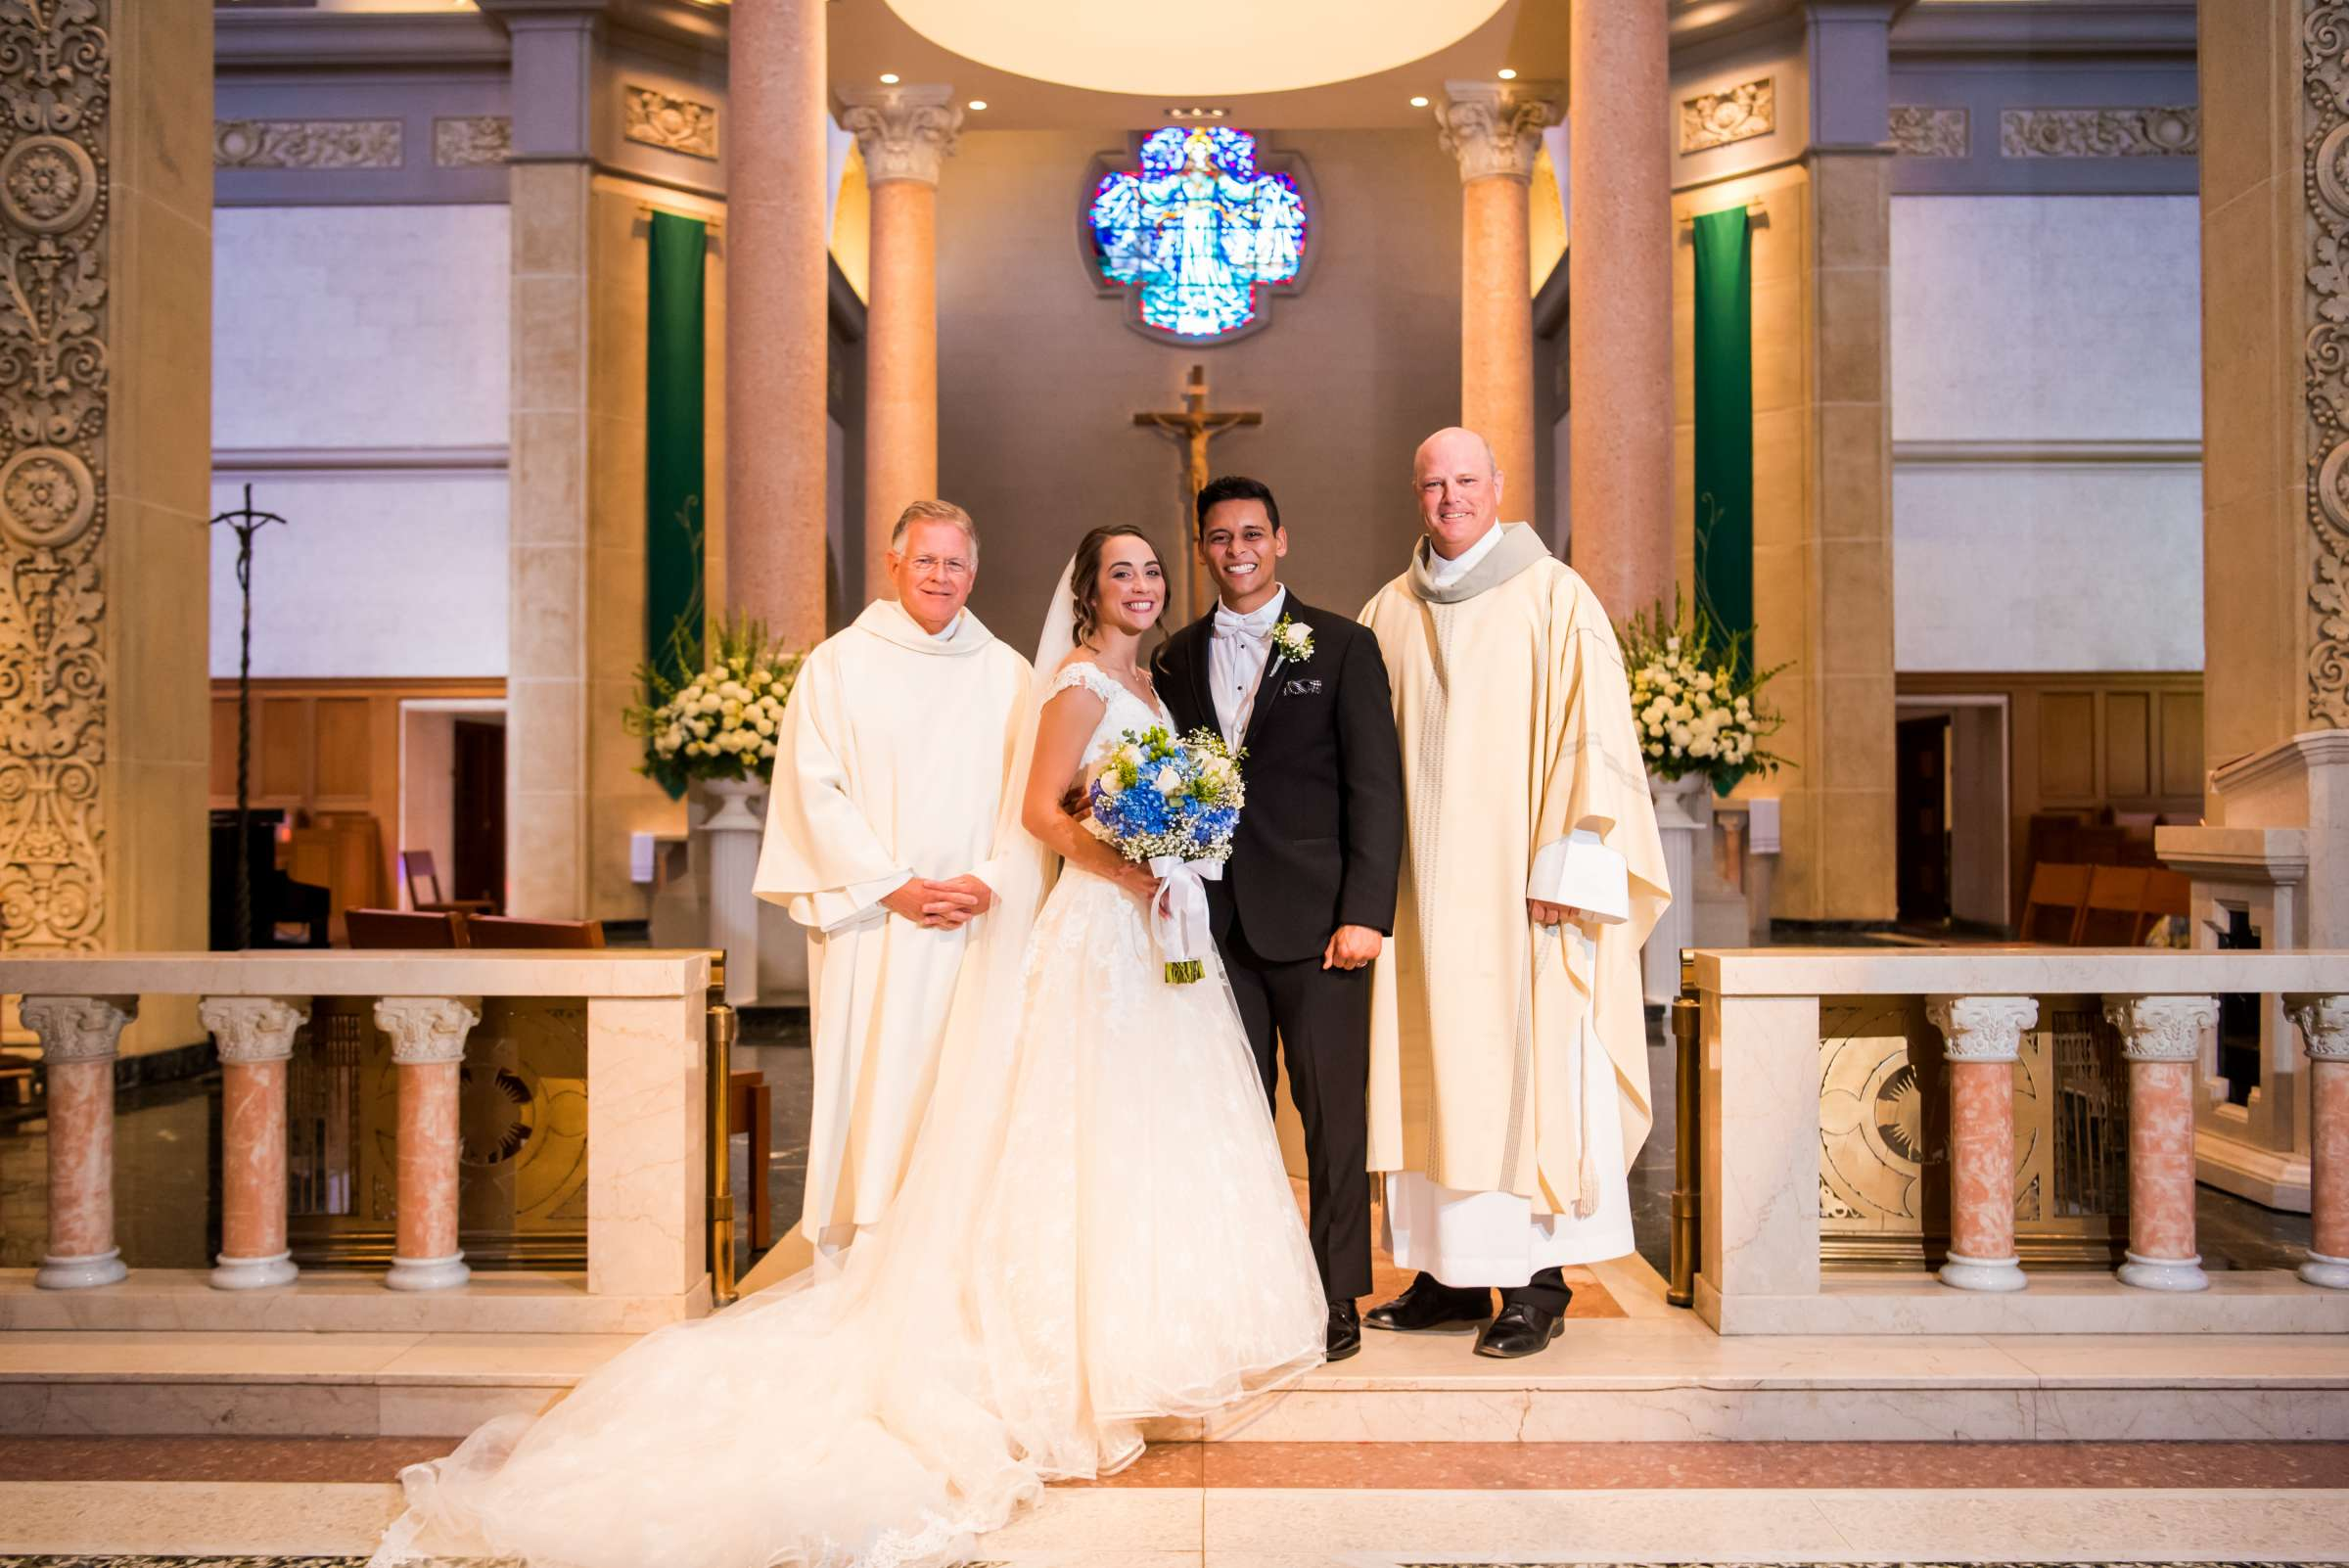 The Immaculata Wedding, Arianna and Jonah Wedding Photo #136 by True Photography